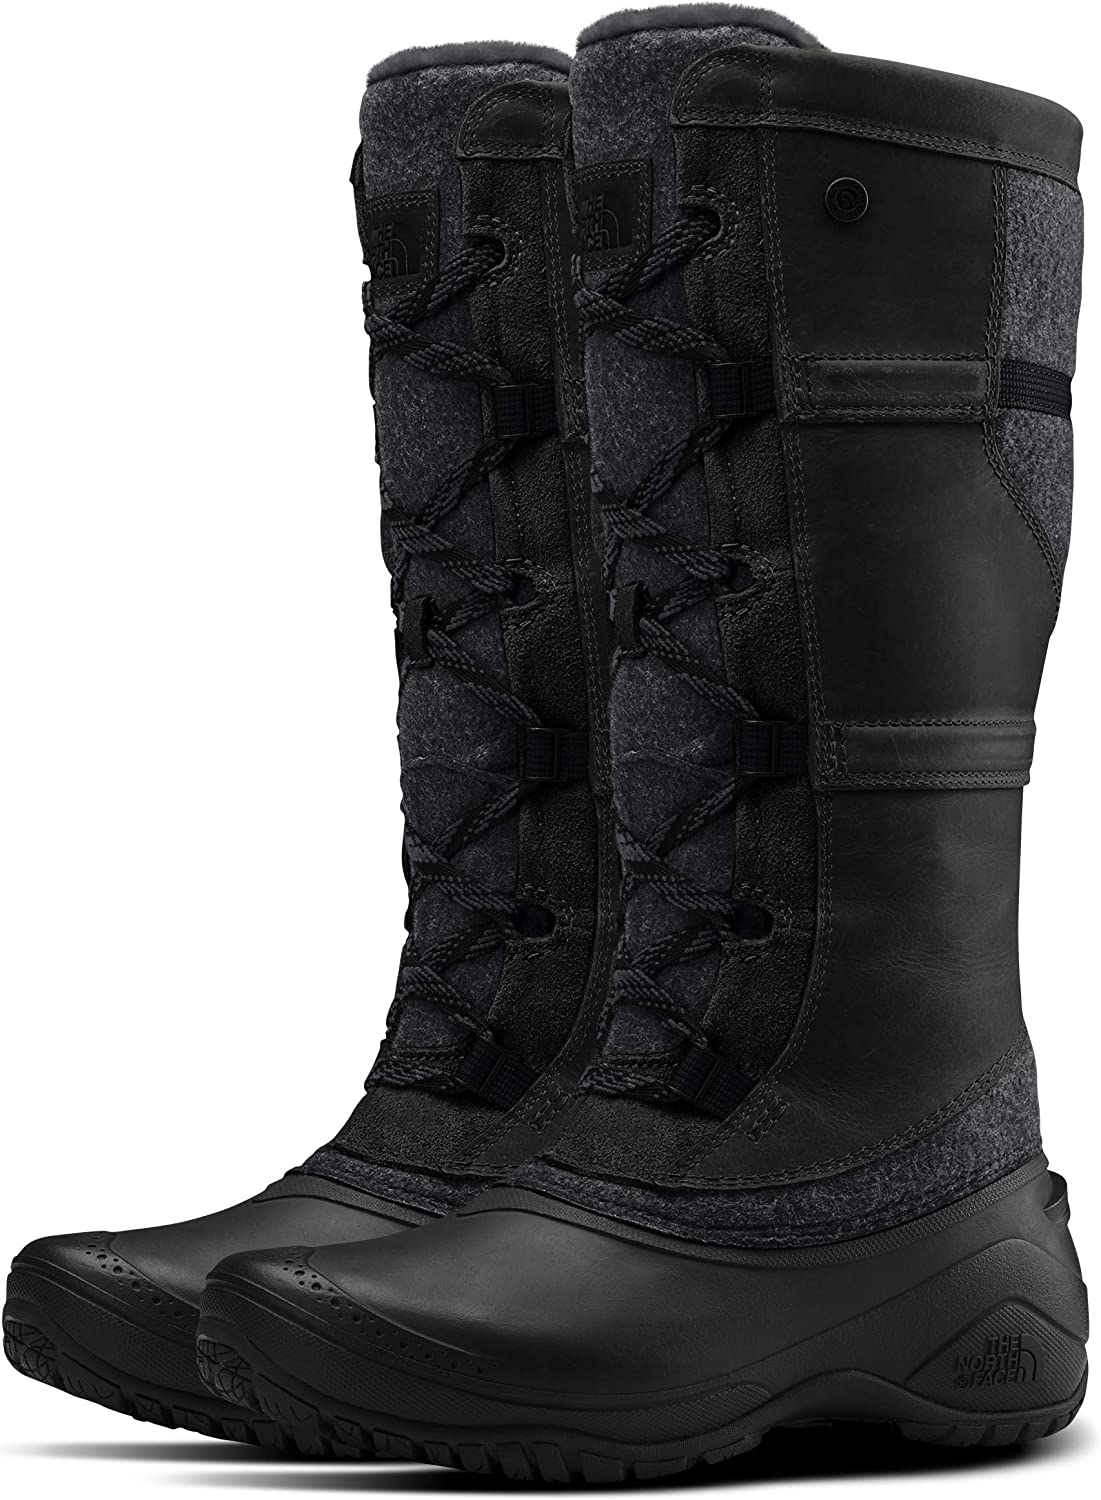 The スーパーセール 保証 North Face Shellista Winter IV Boot Tall